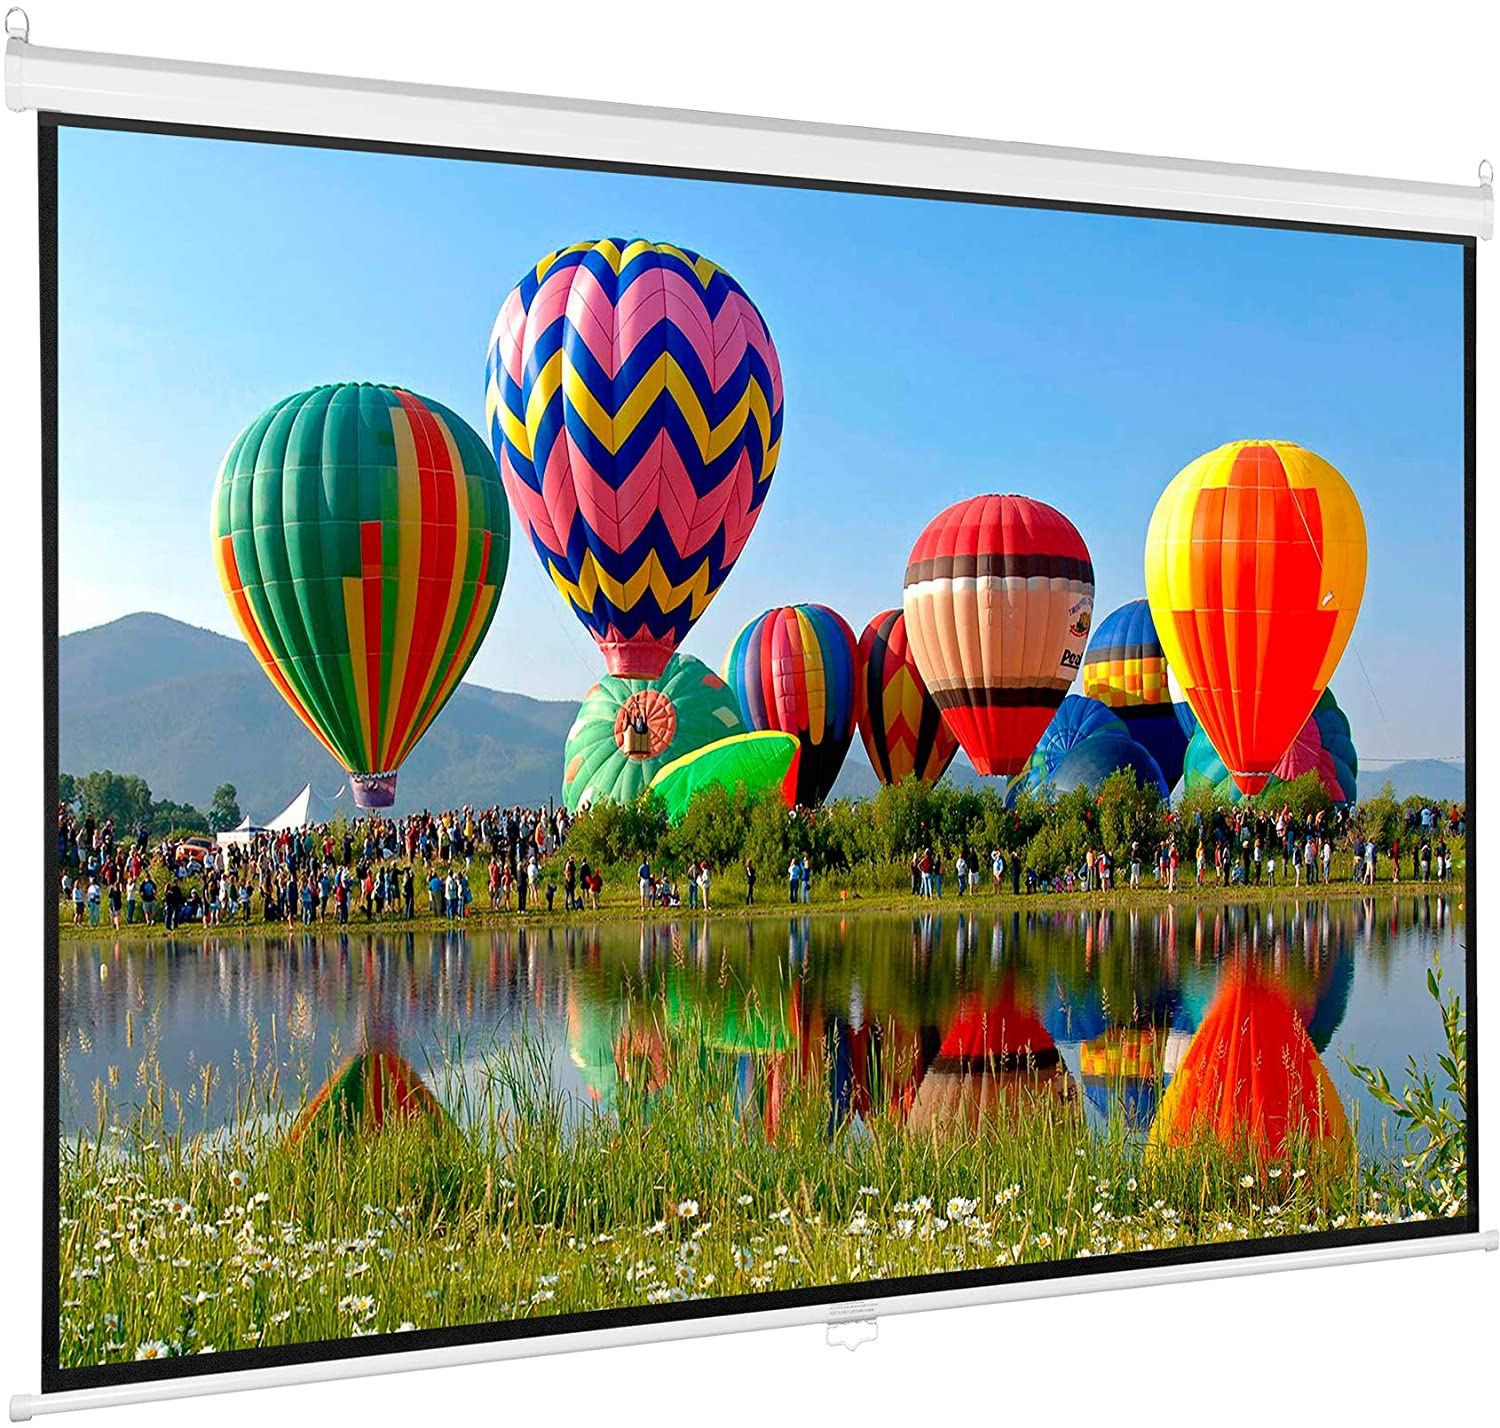 VIVO 100 inch Diagonal Projector Screen, 16:9 Projection HD Manual Pull Down, PS-M-100